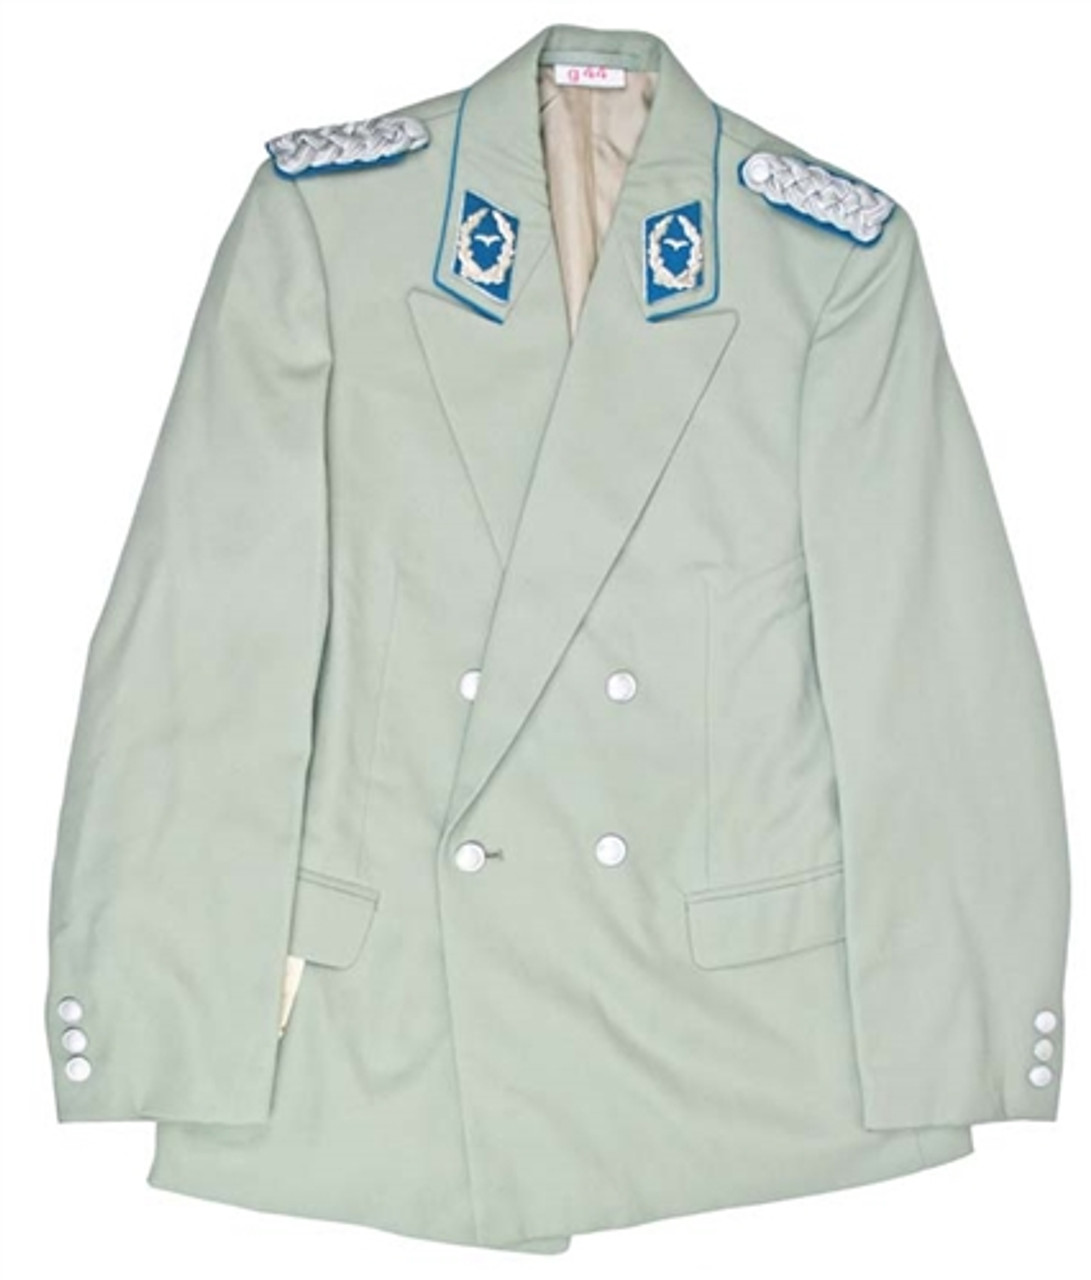 E. German Air Force Officer's Parade Jacket  With Insignia